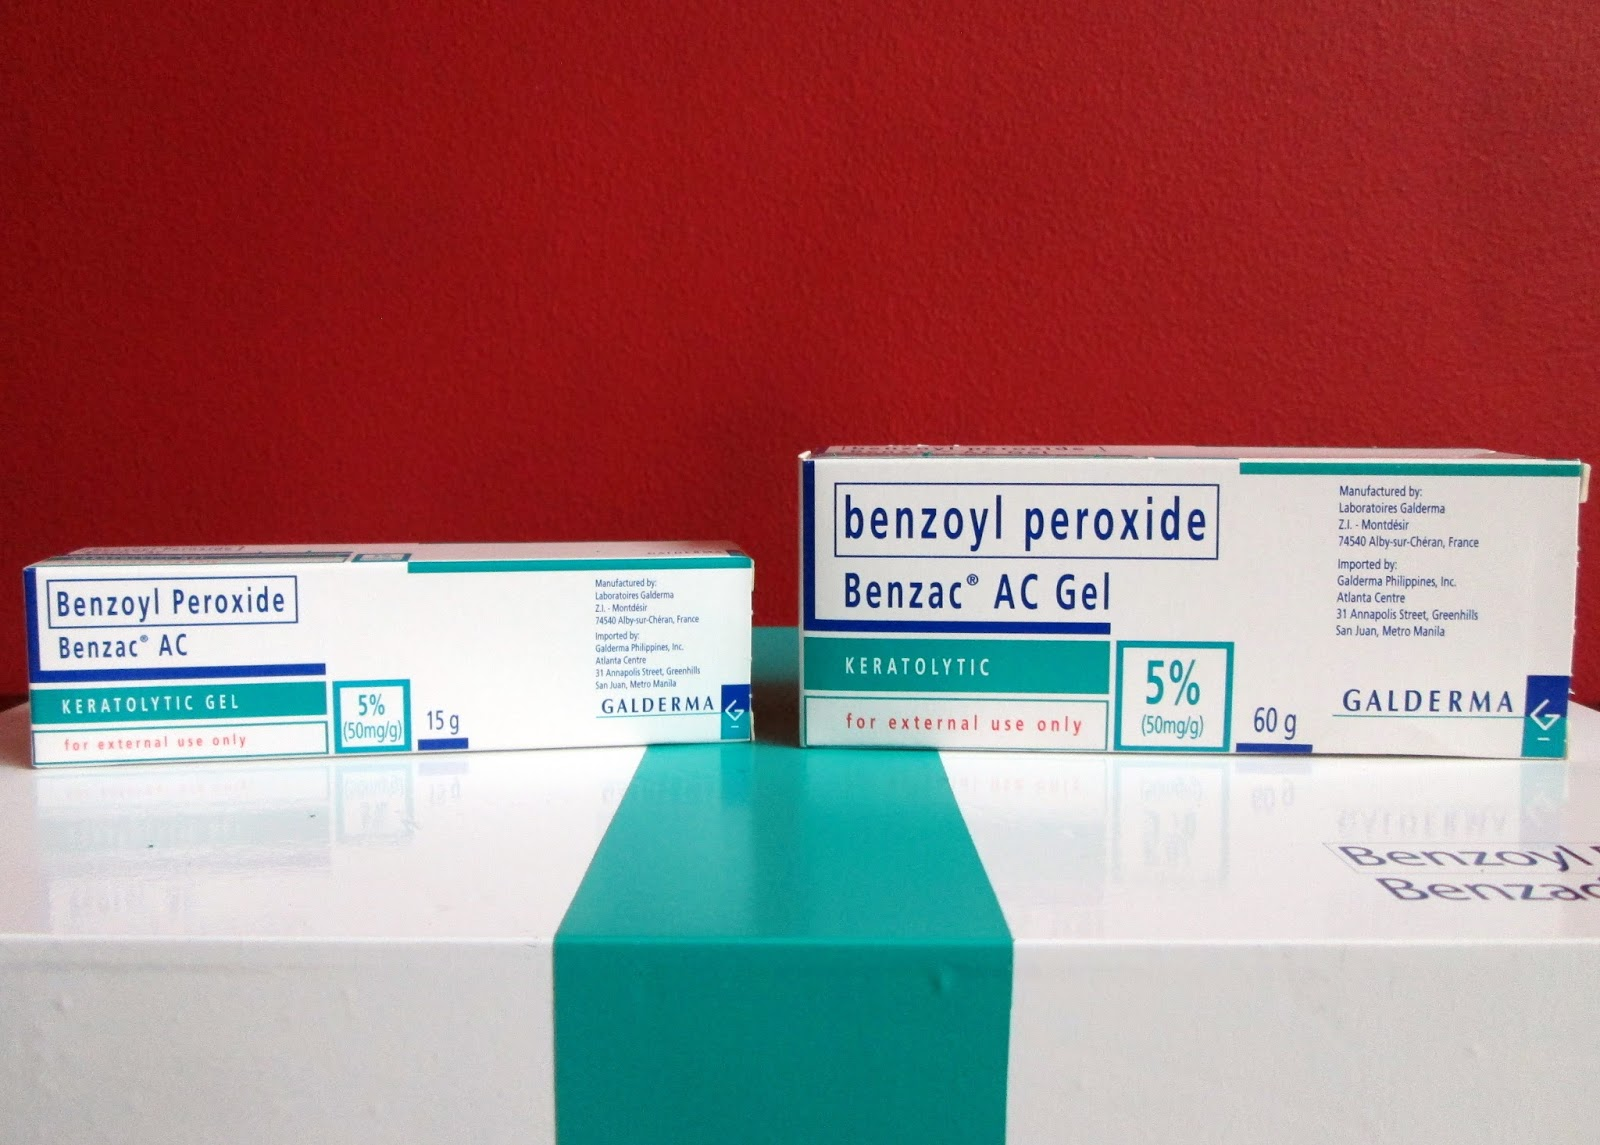 how much does ketoconazole cream cost